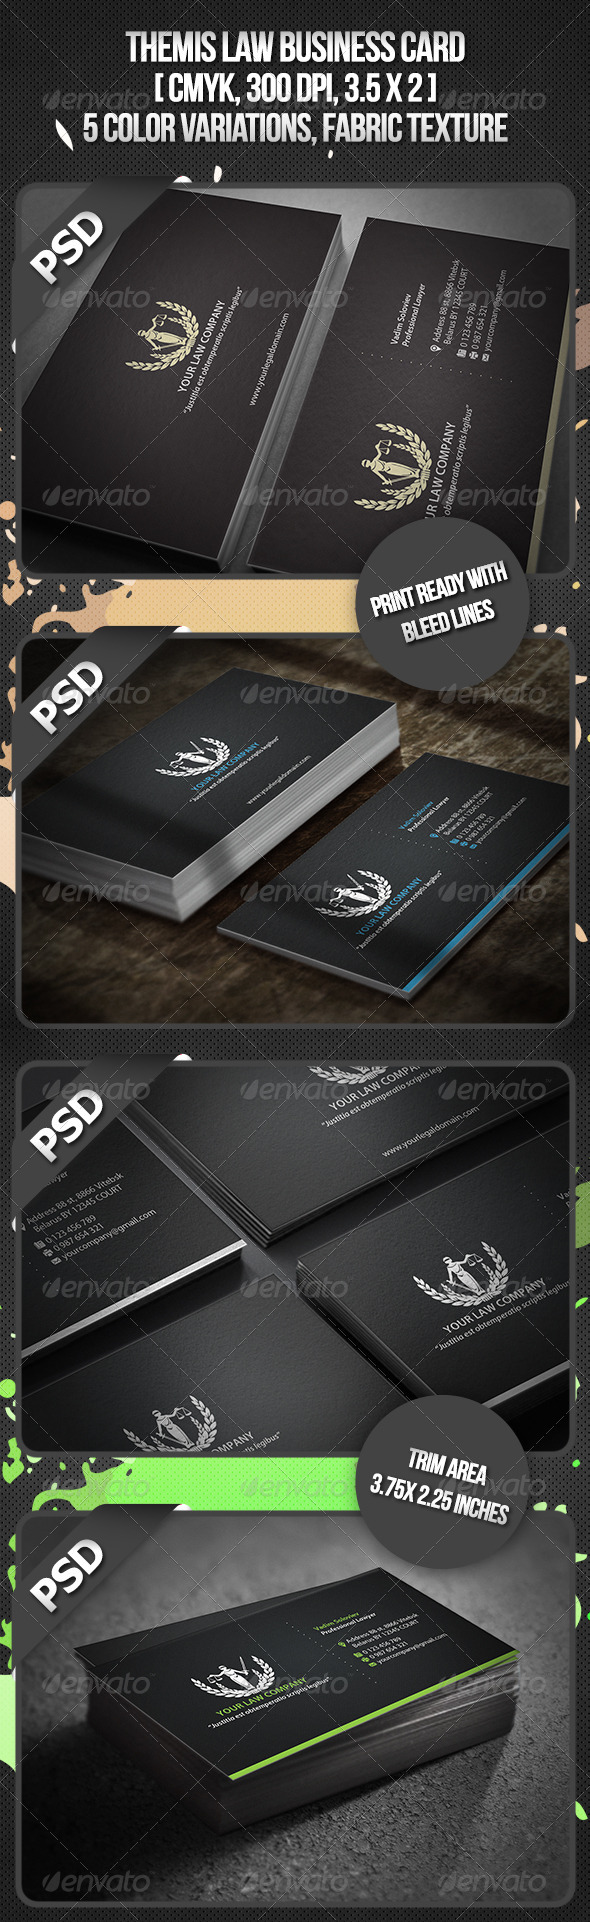 Themis Law Business Card - Business Cards Print Templates